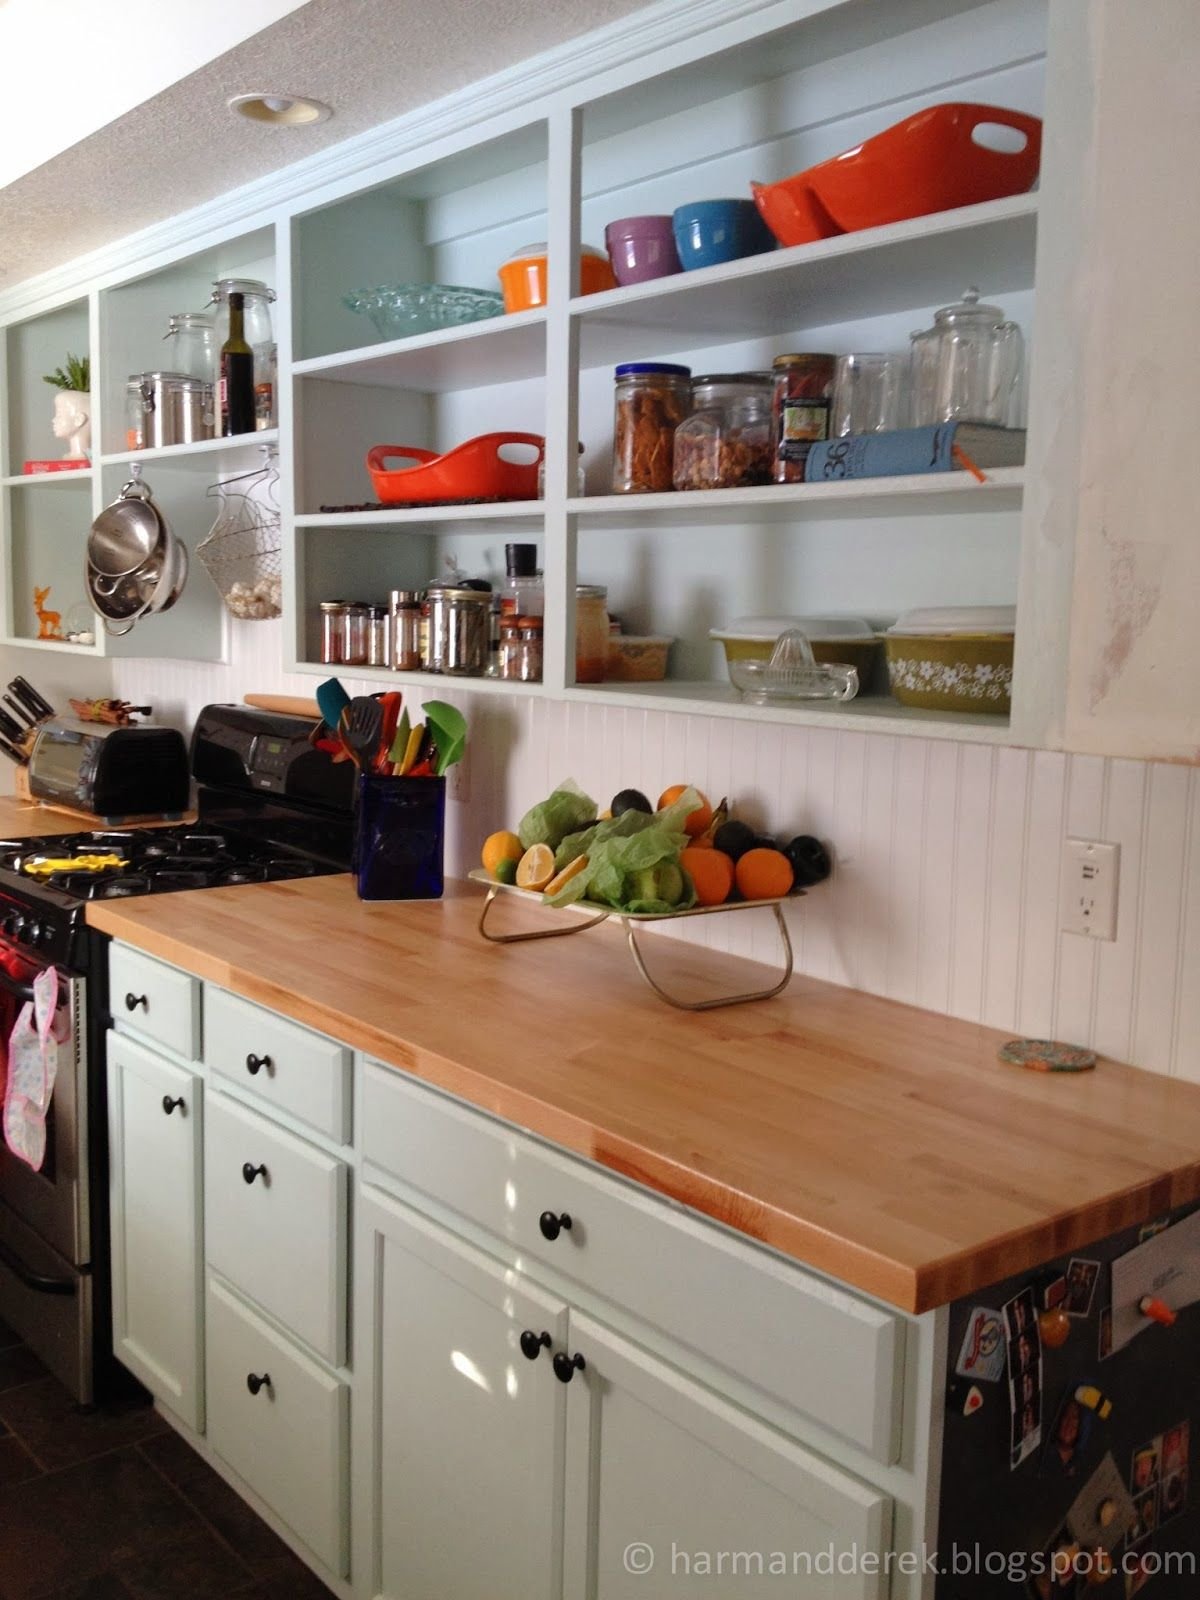 1960s Kitchen Remodel Before After: Husband And Harmony: Remodeling The Kitchen. Before, In